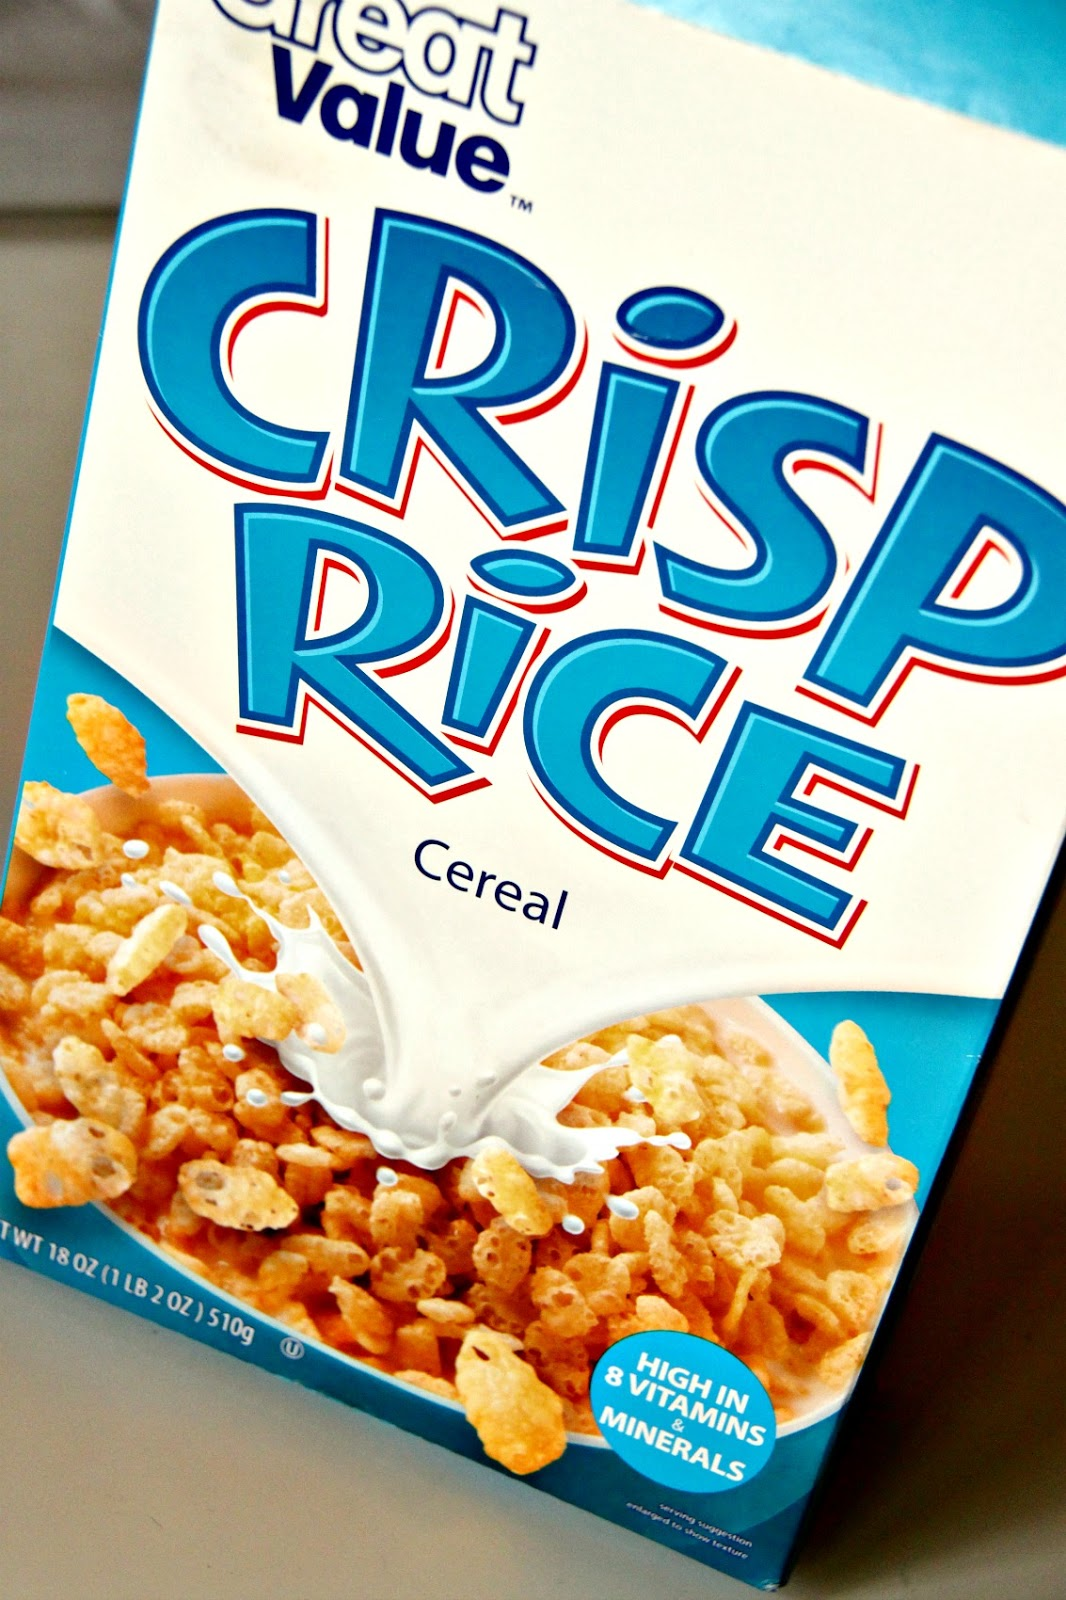 Larissa another day 2012 oh and you will want a cereal box too ccuart Gallery